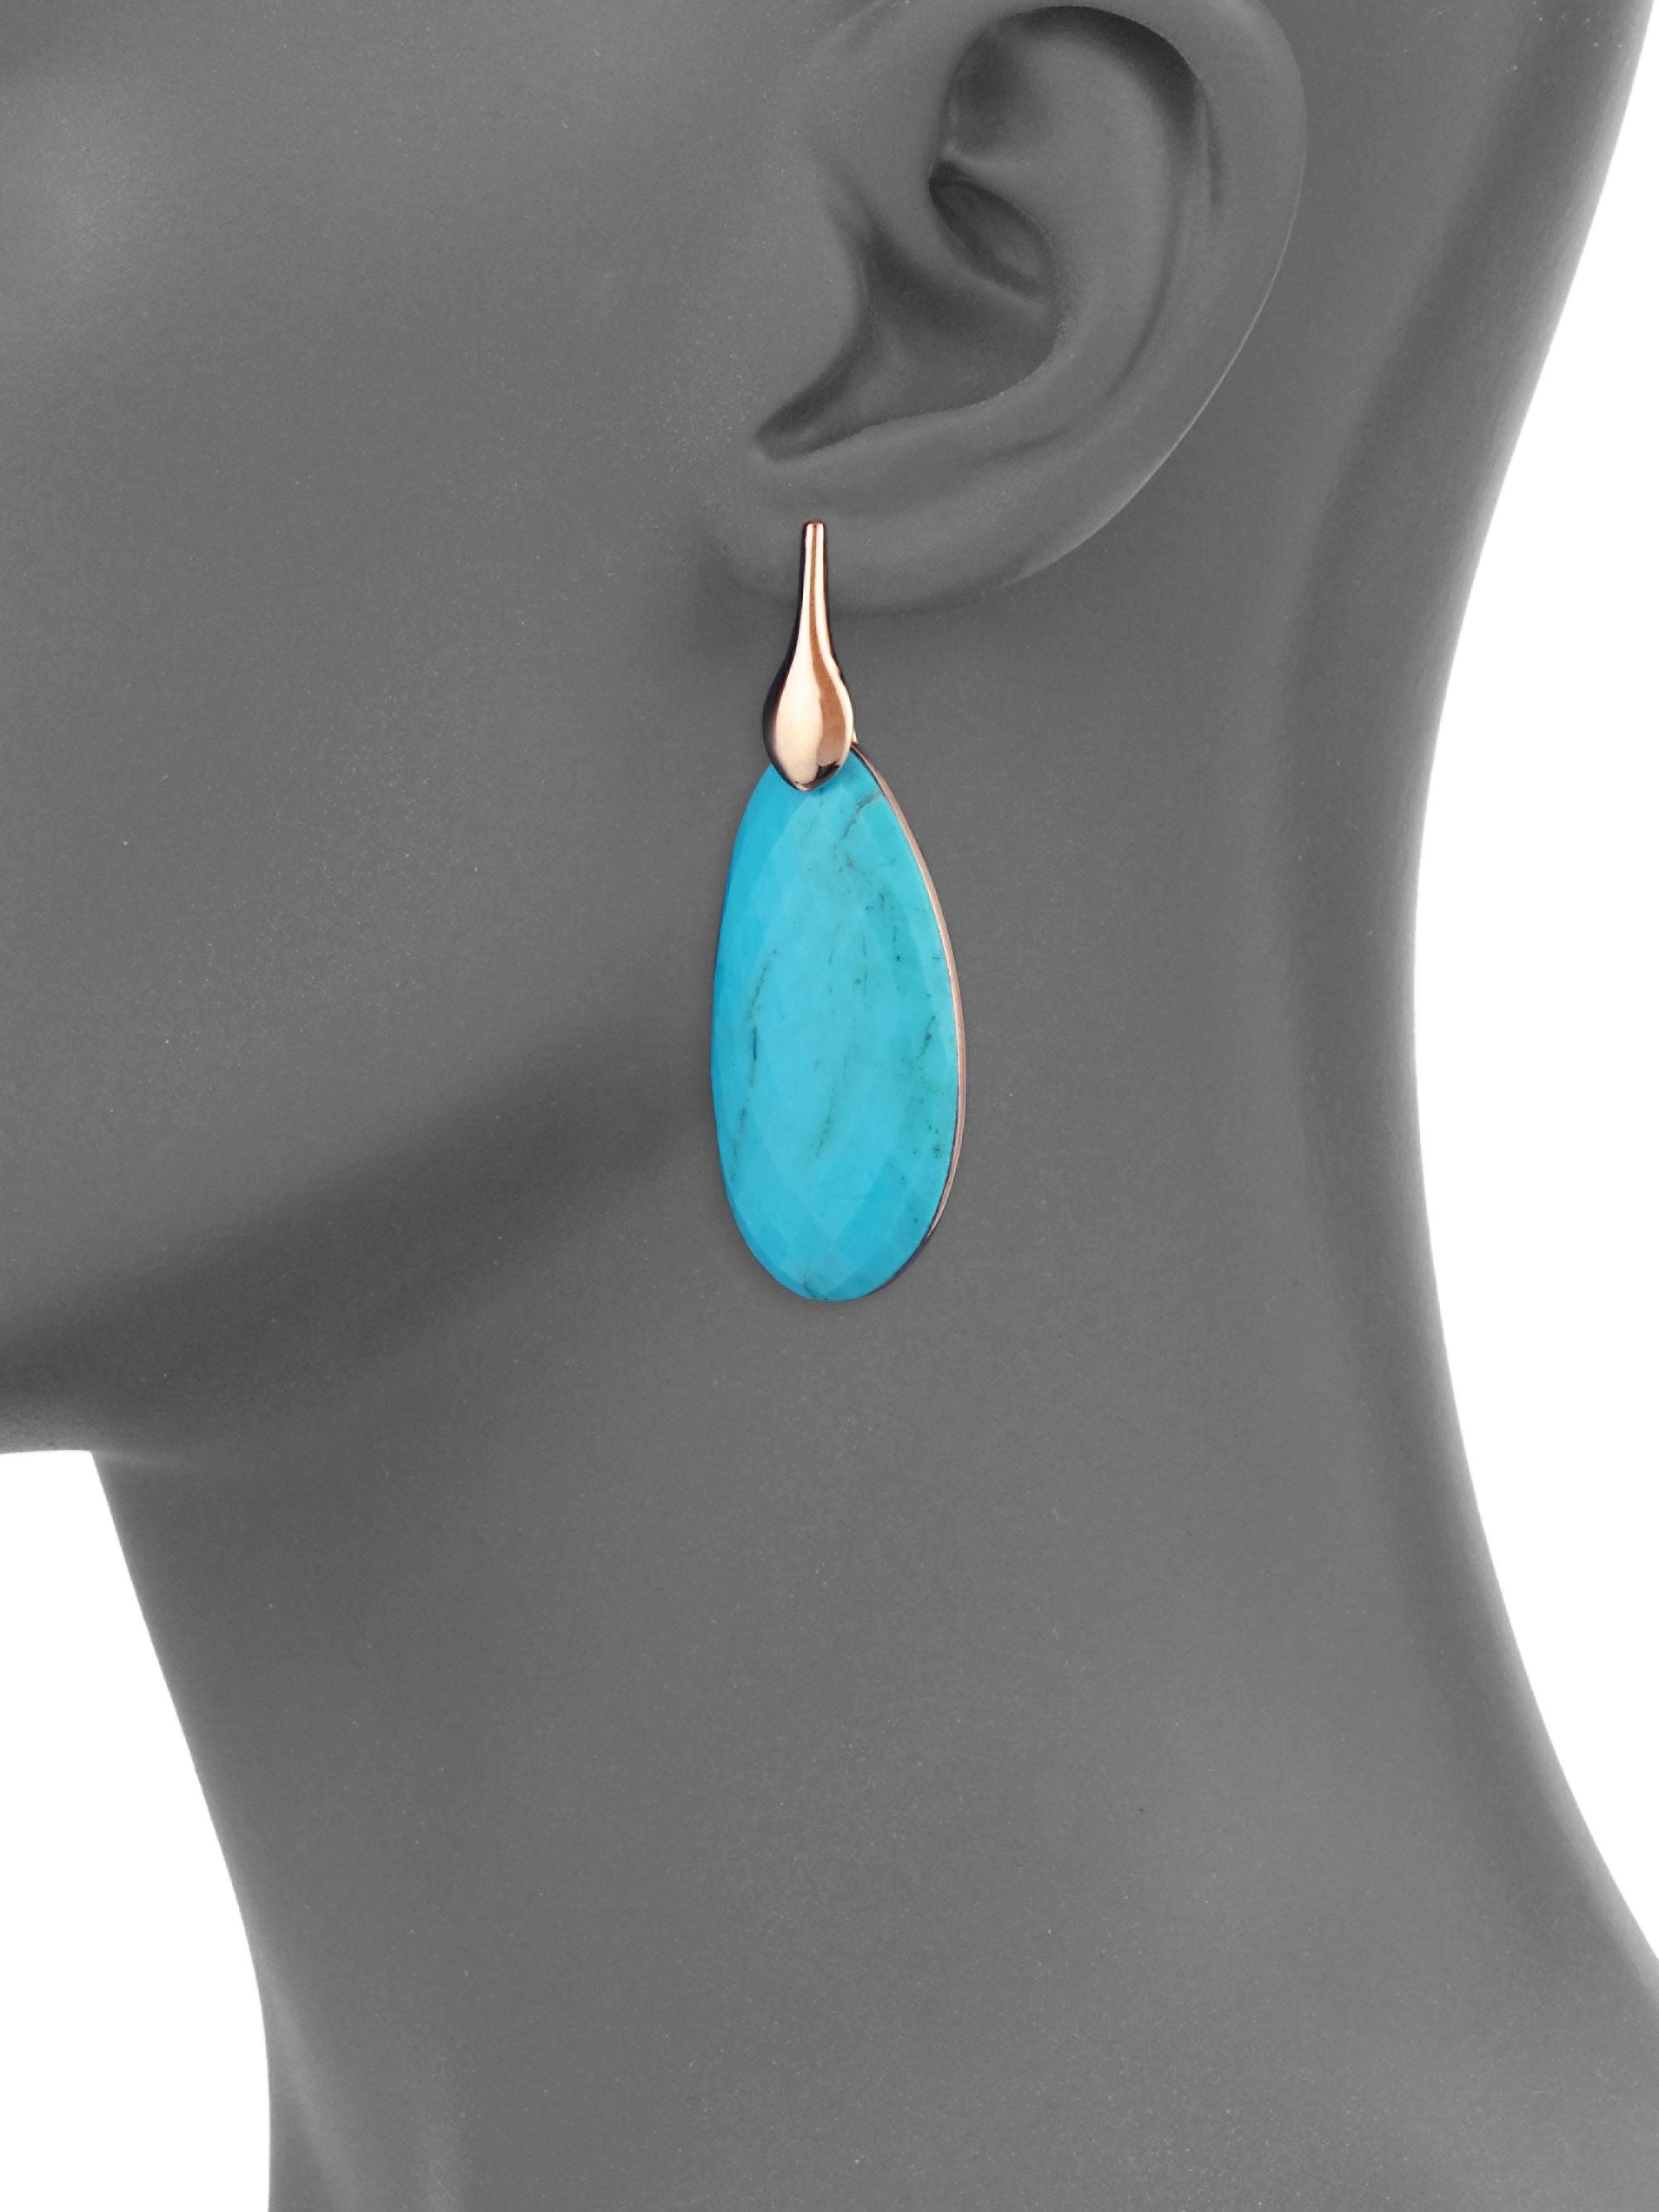 b6a71ea22b477 Monica Vinader Blue Nura Turquoise Earrings